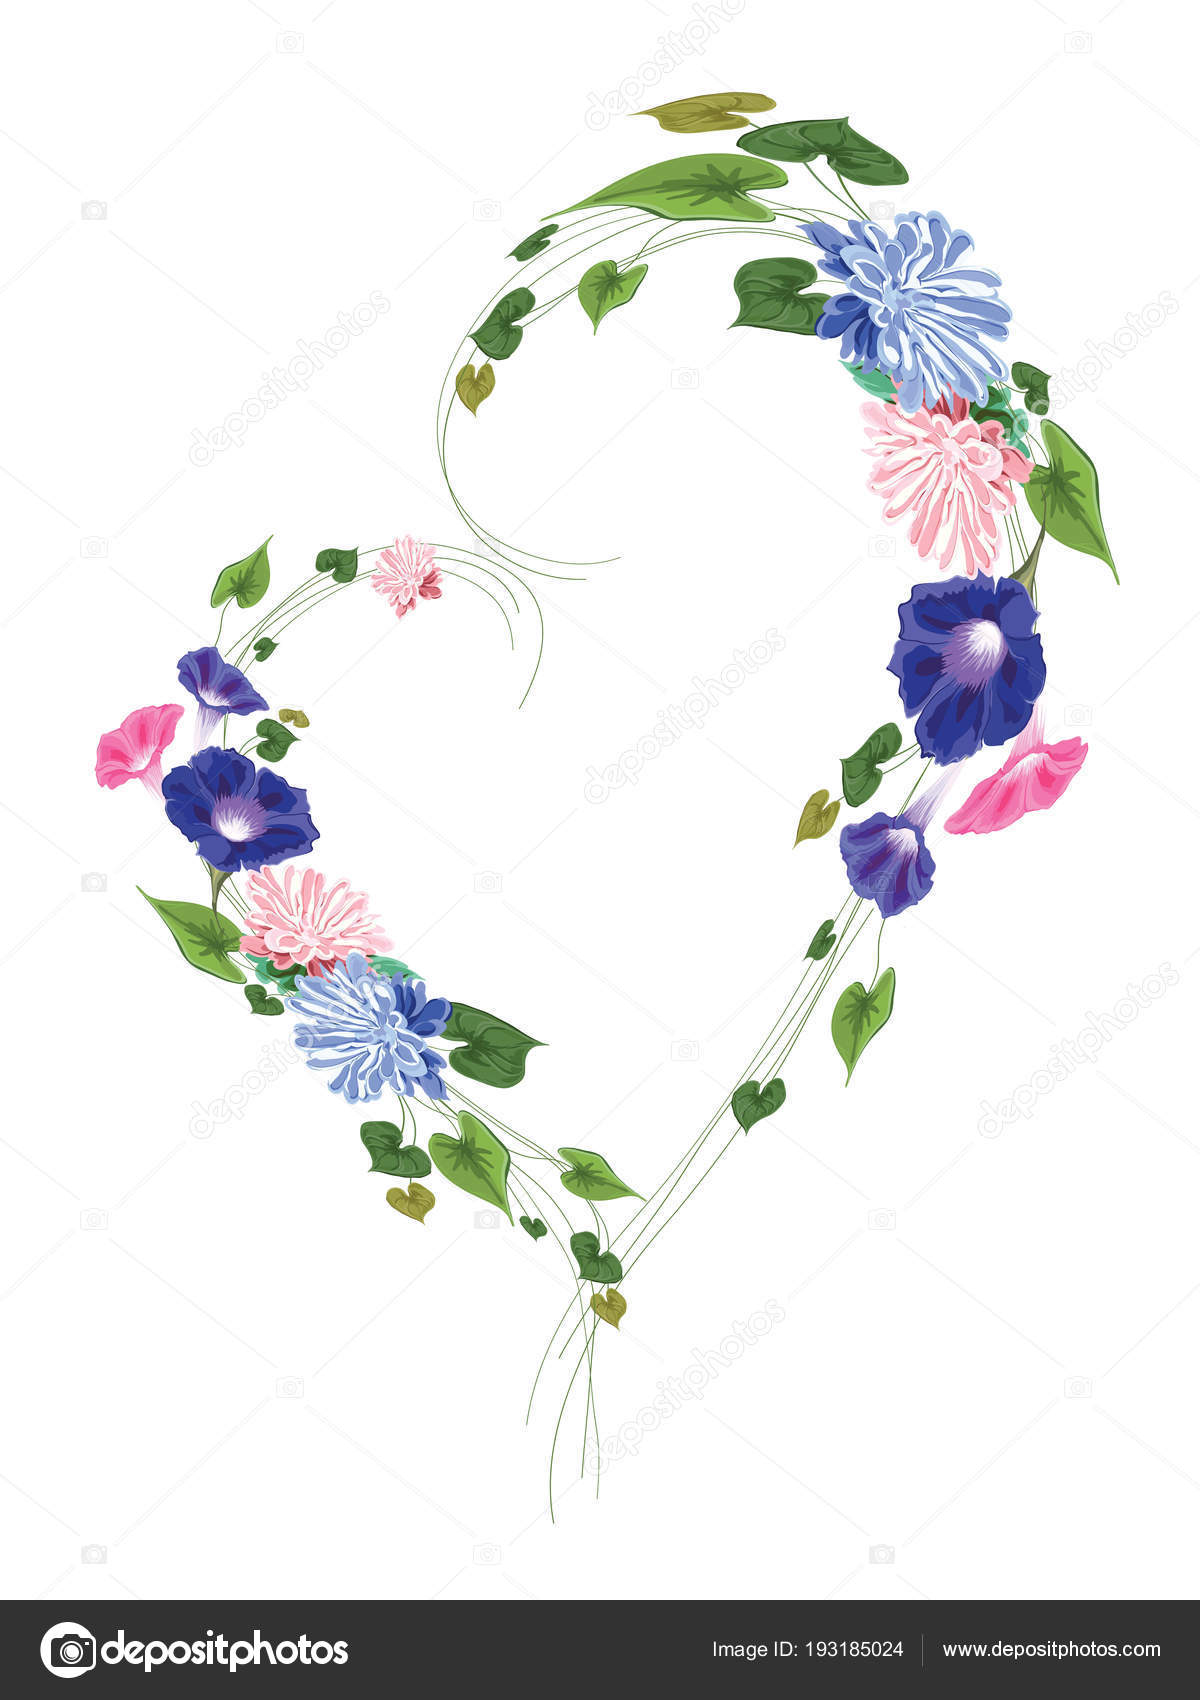 Wreath heart shaped frame made from flowers leaves and curly st wreath heart shaped frame made from flowers leaves and curly stems astra vine ivy green pink blue on white background in vector isolated vector by mightylinksfo